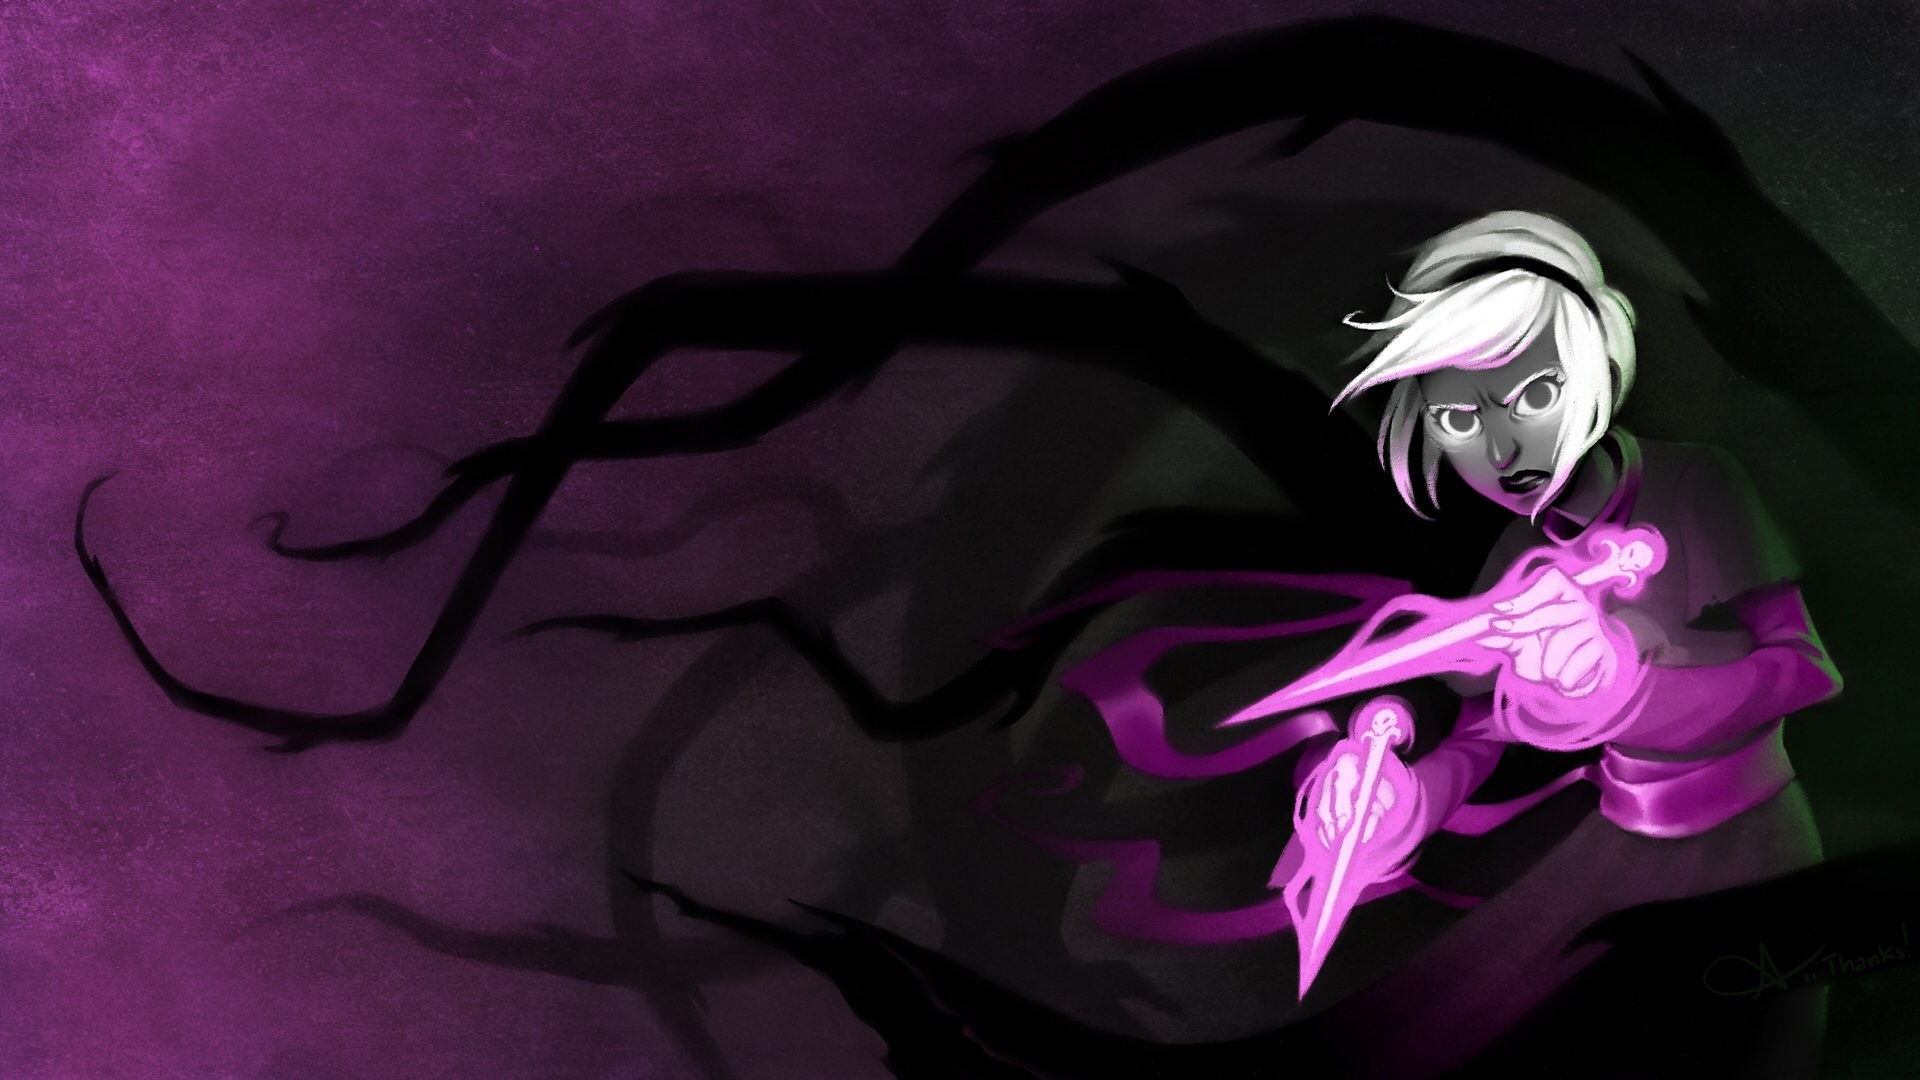 Res: 1920x1080, homestuck rose lalonde